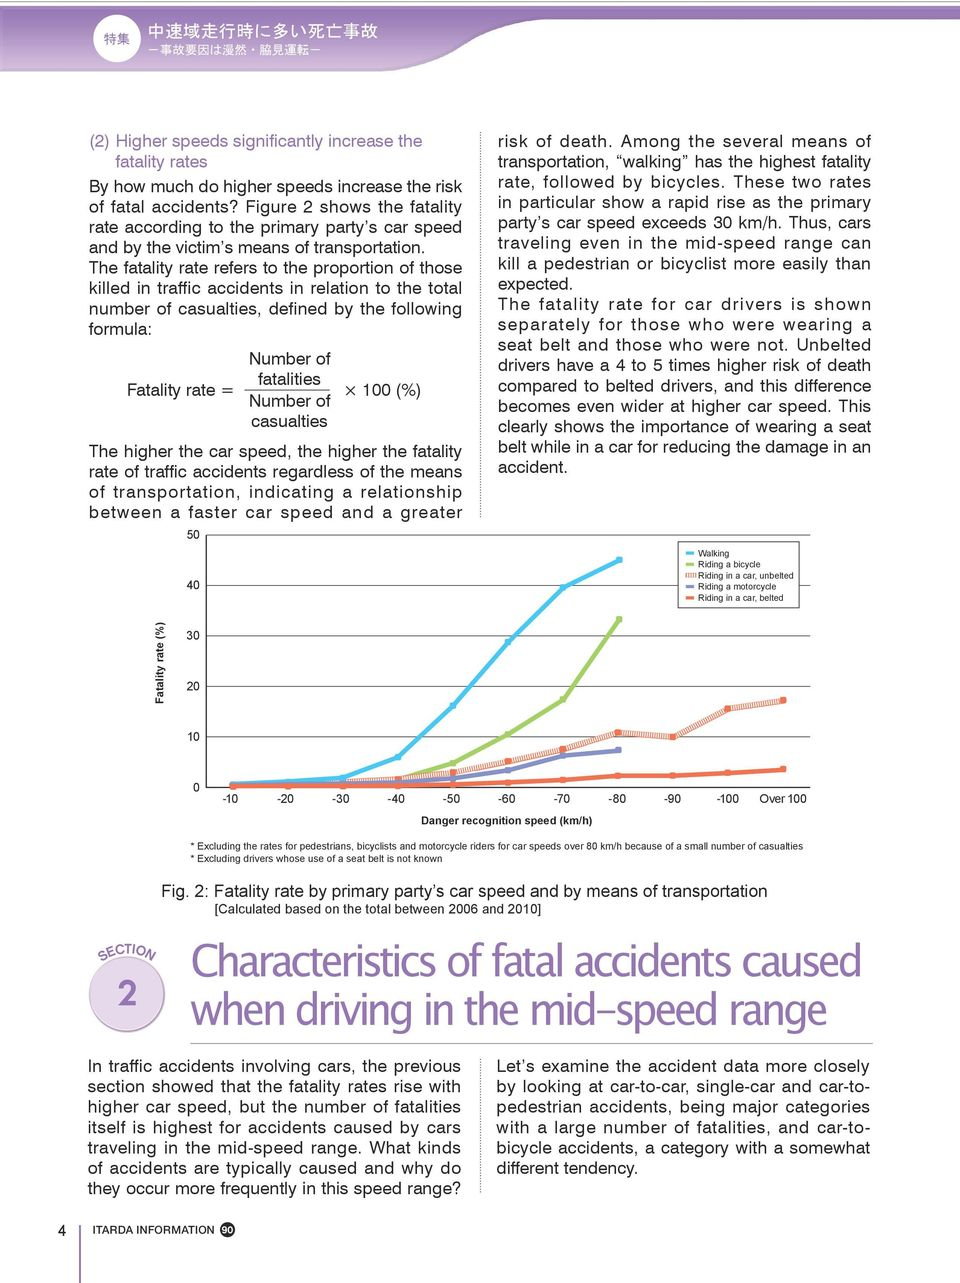 The fatality rate refers to the proportion of those killed in traffic accidents in relation to the total number of casualties, defined by the following formula: Number of fatalities Fatality rate = 1